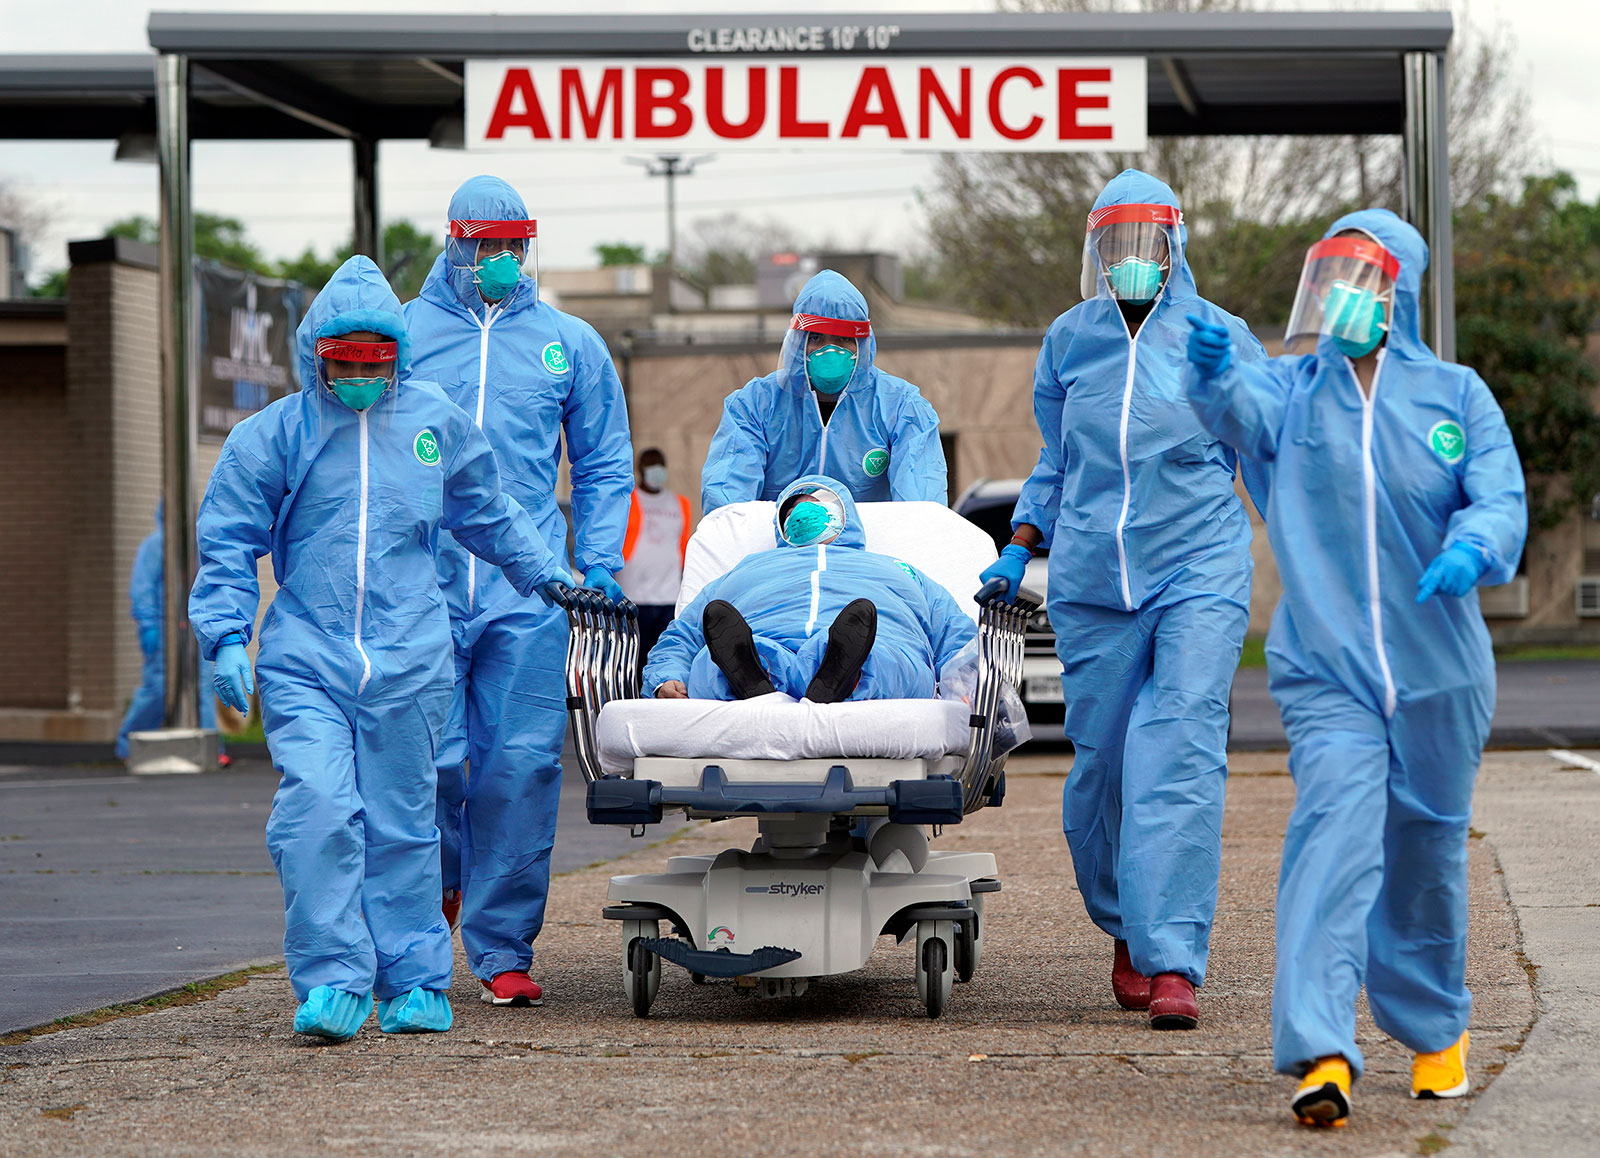 Medical workers take a patient on a gurney into United Memorial Medical Center in Houston, Texas, on March 19.